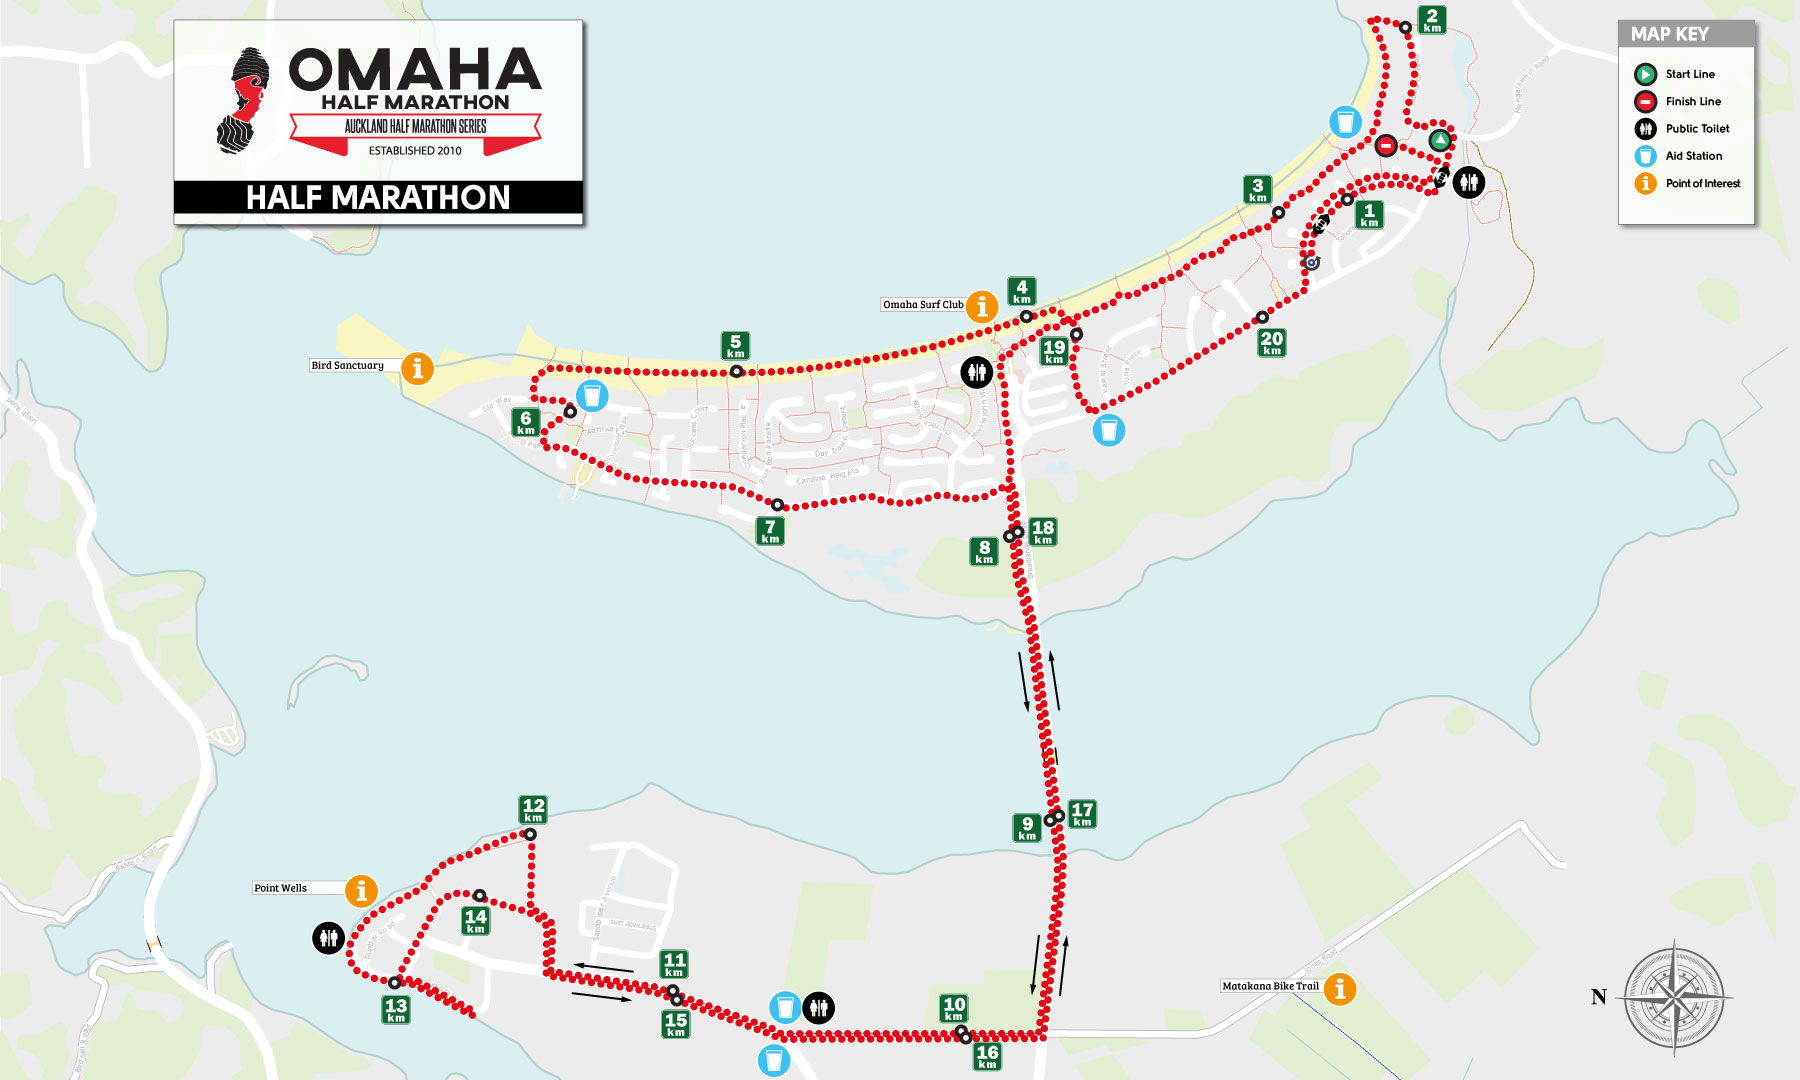 Half Marathon Course Map